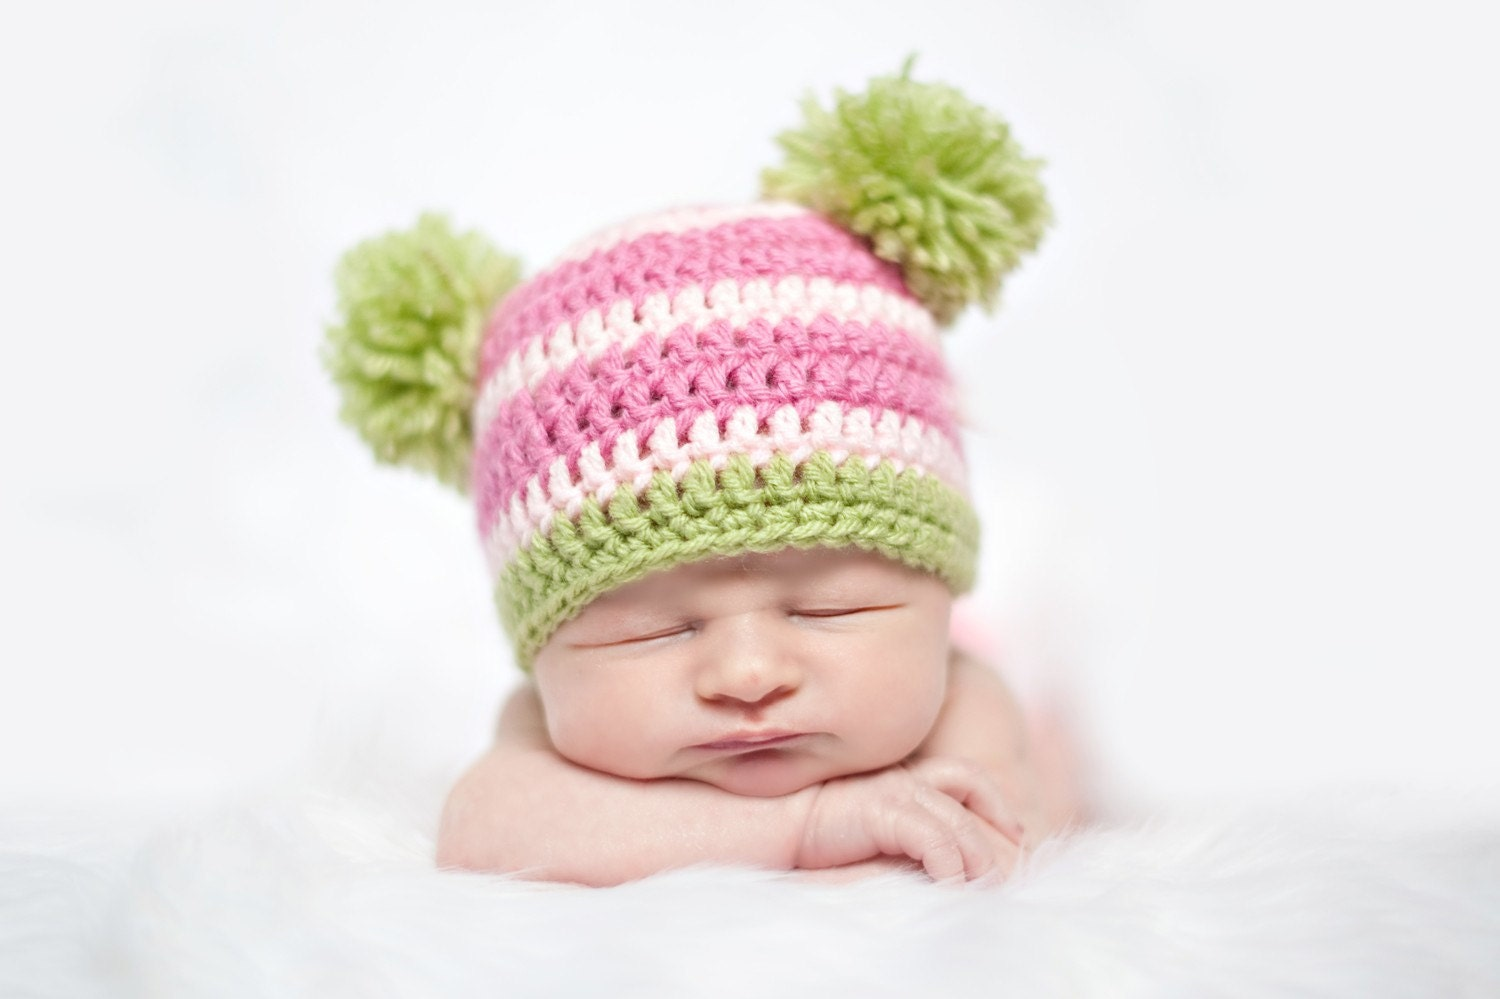 Crochet Baby Hat Pattern With Pom Pom : Crochet PATTERN Double Pom Pom Beanie Hat Instant by ...